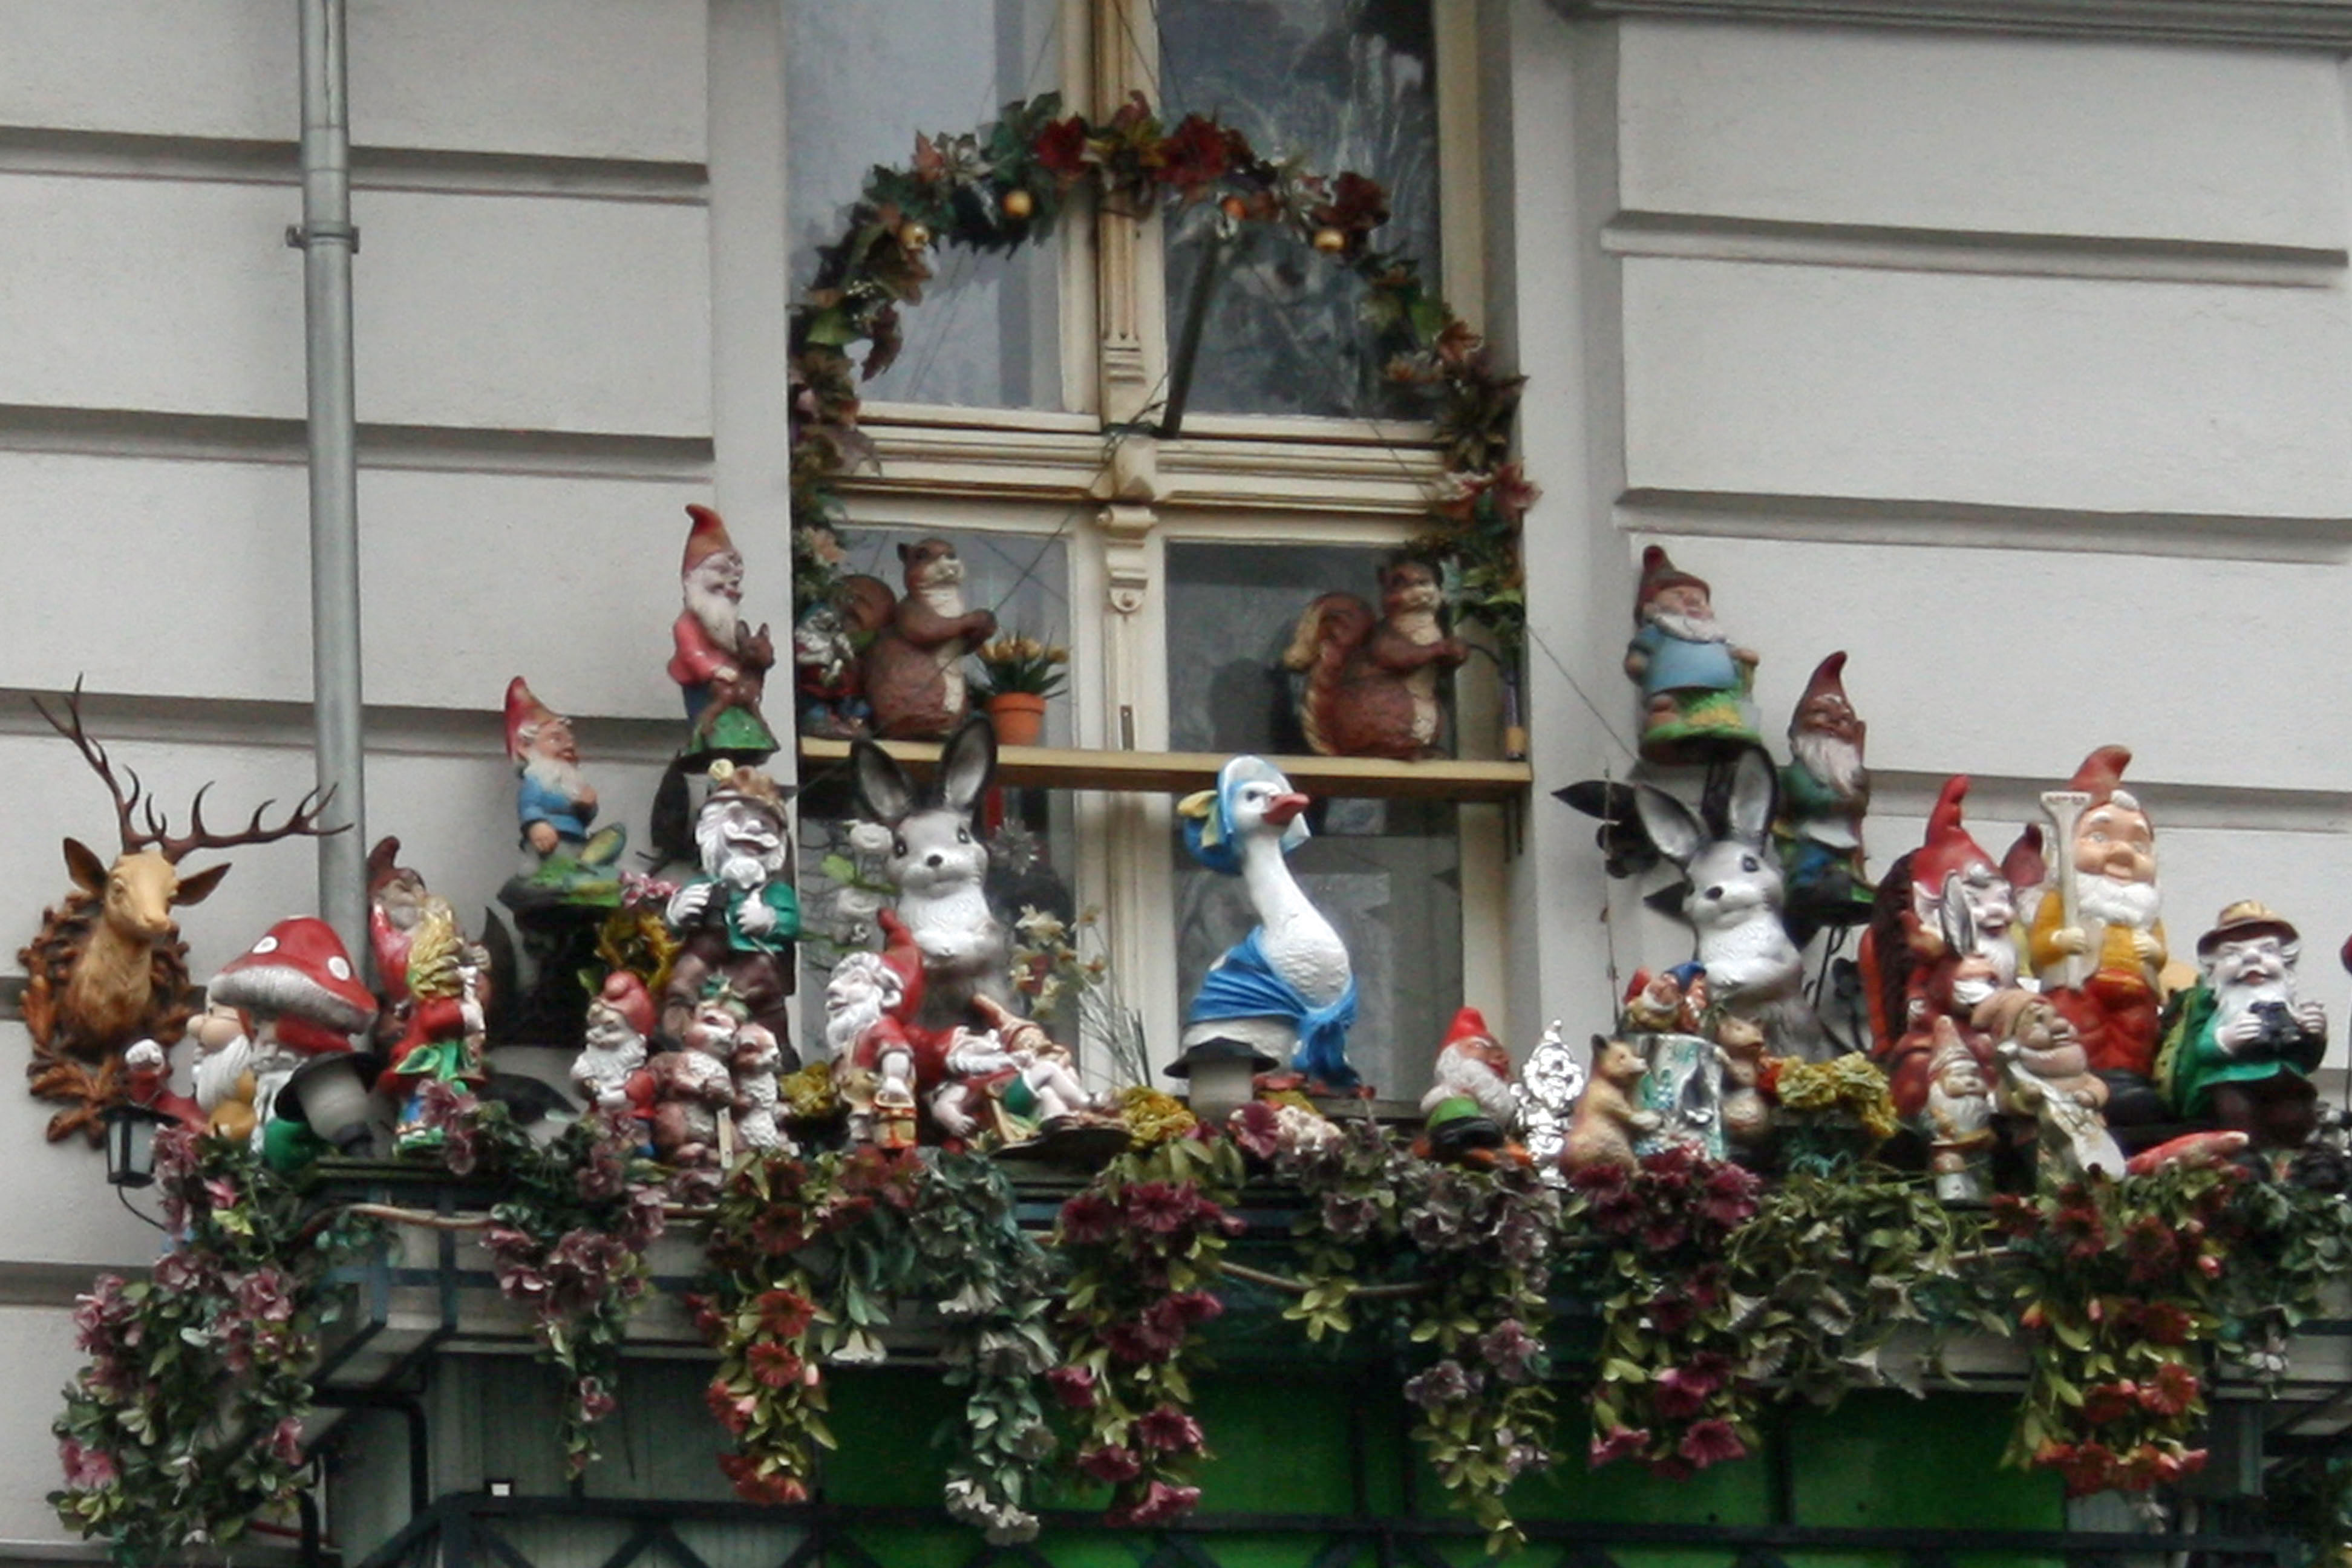 A balcony full of Gnomes in Prenzlauer Berg in Berlin